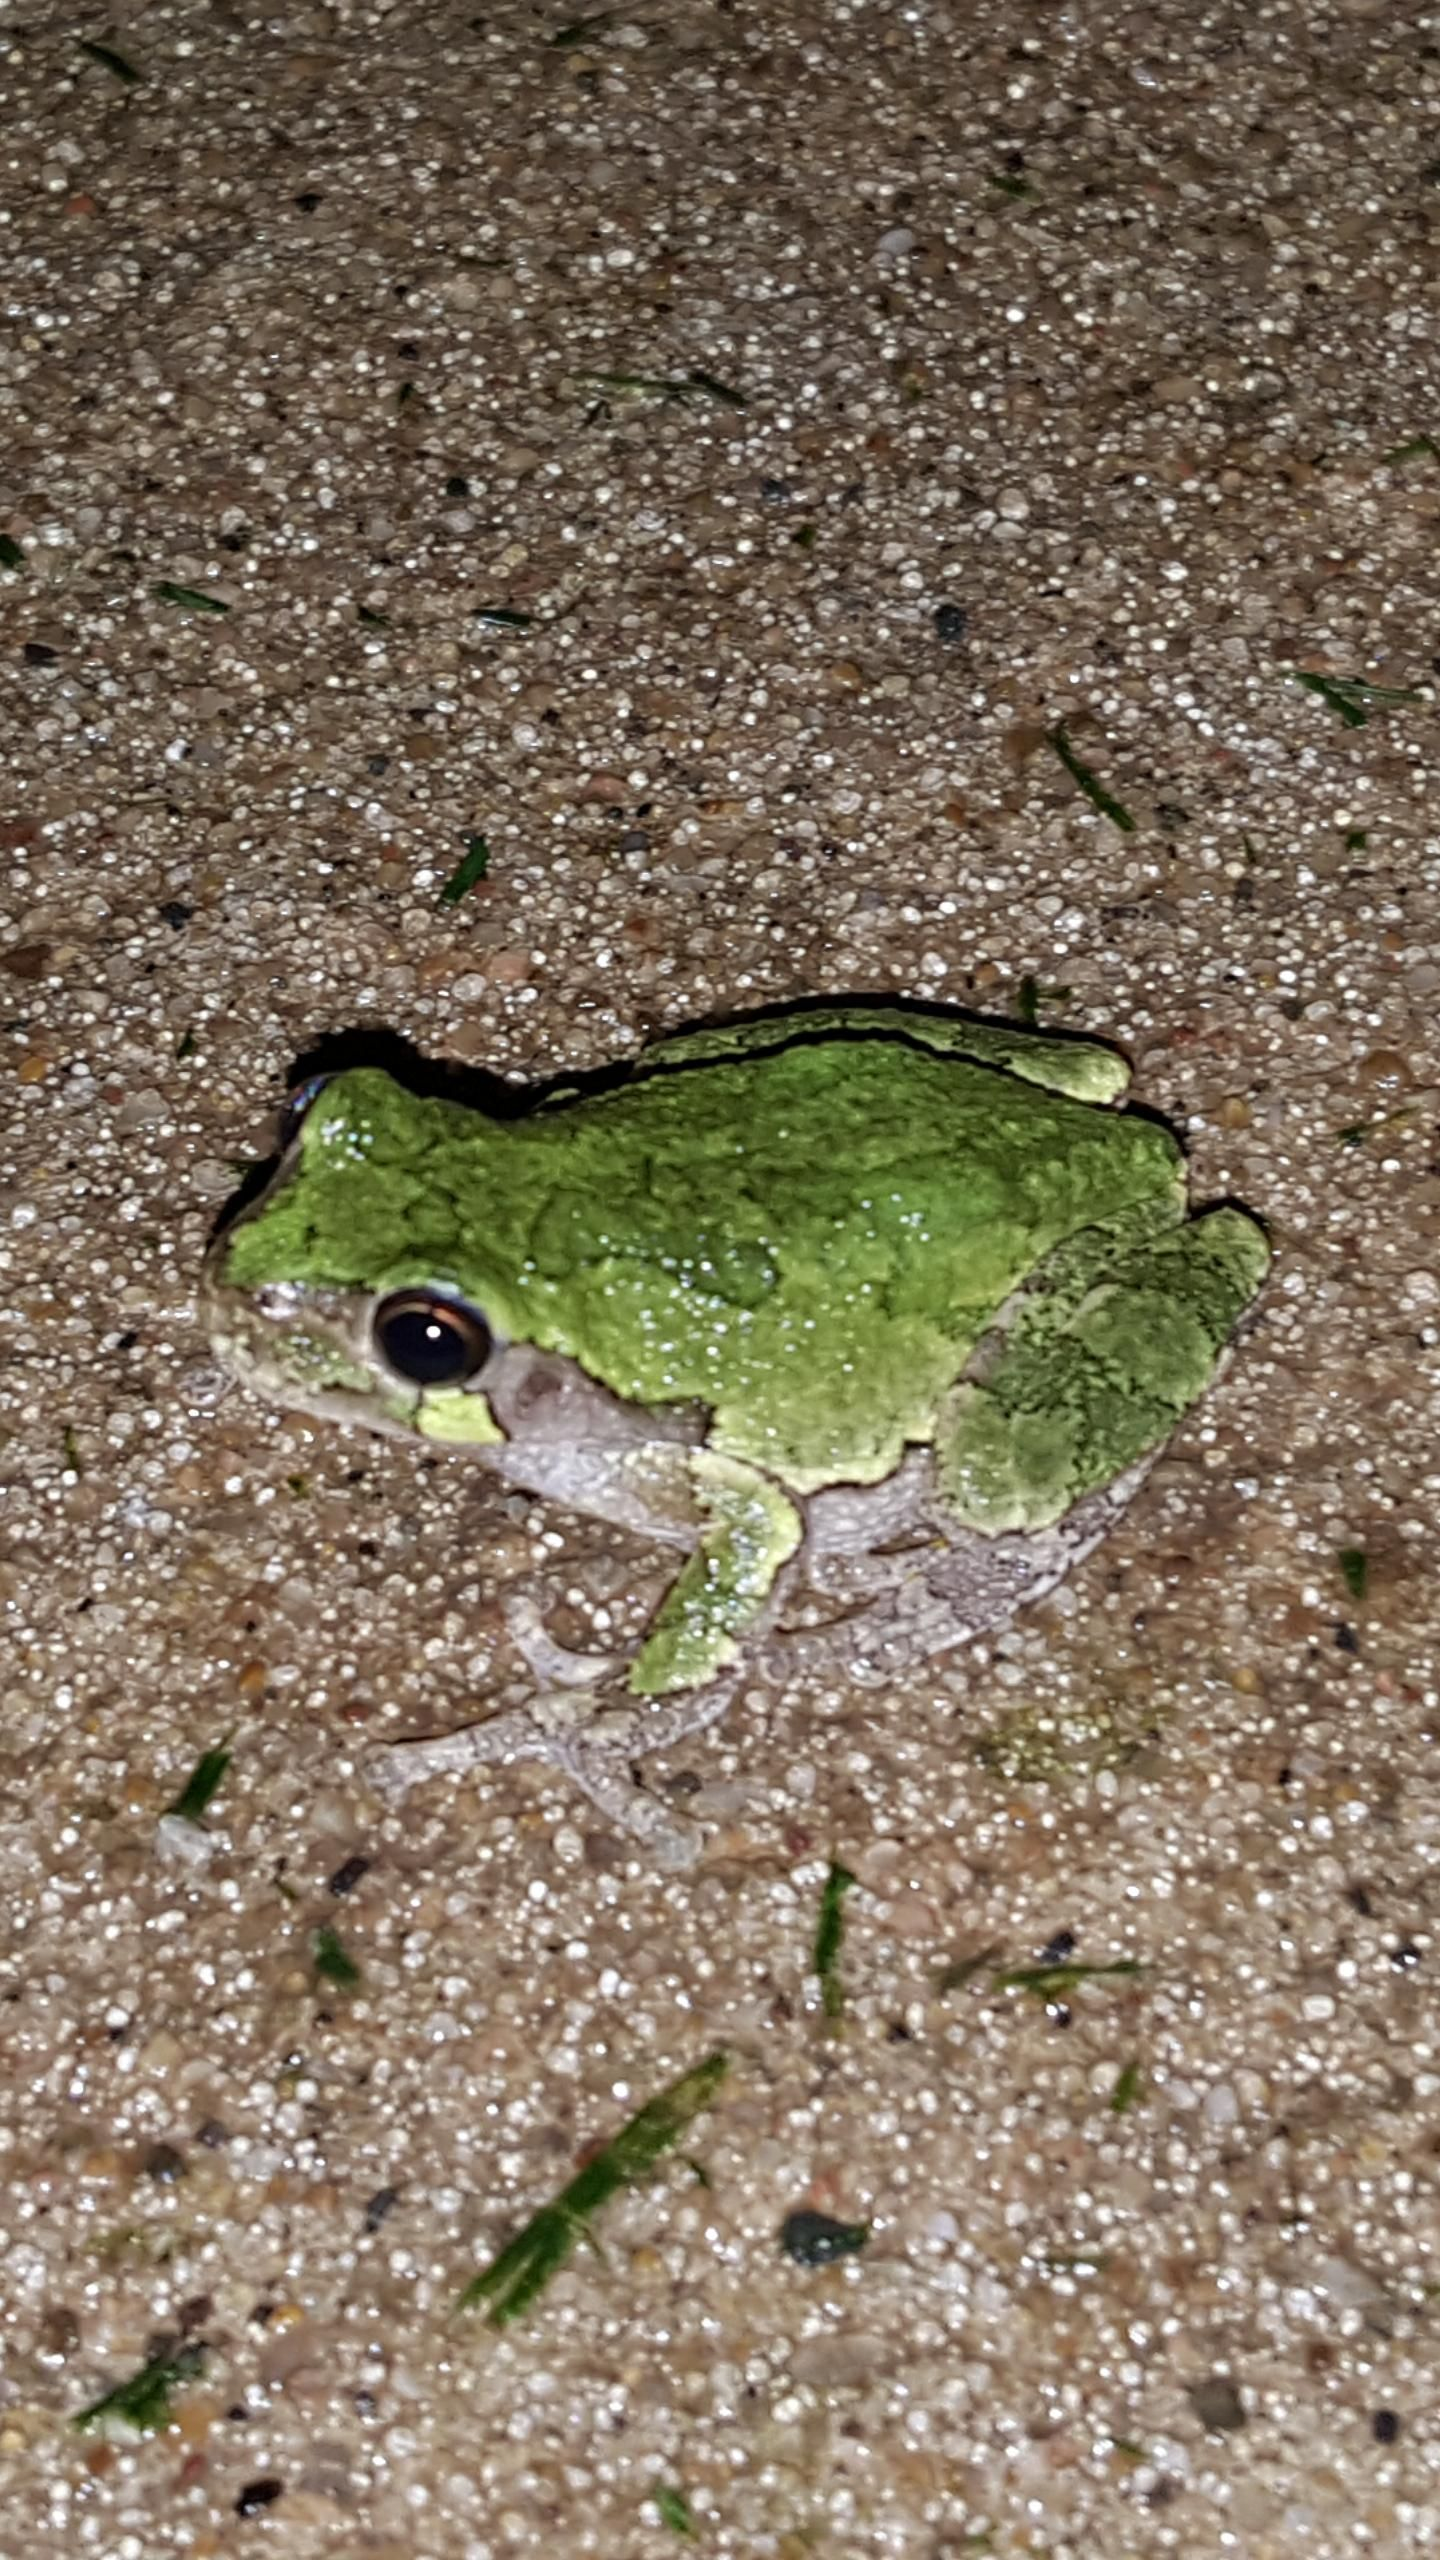 I've never seen a toad that was so green! http://ift.tt/1WmbcpS